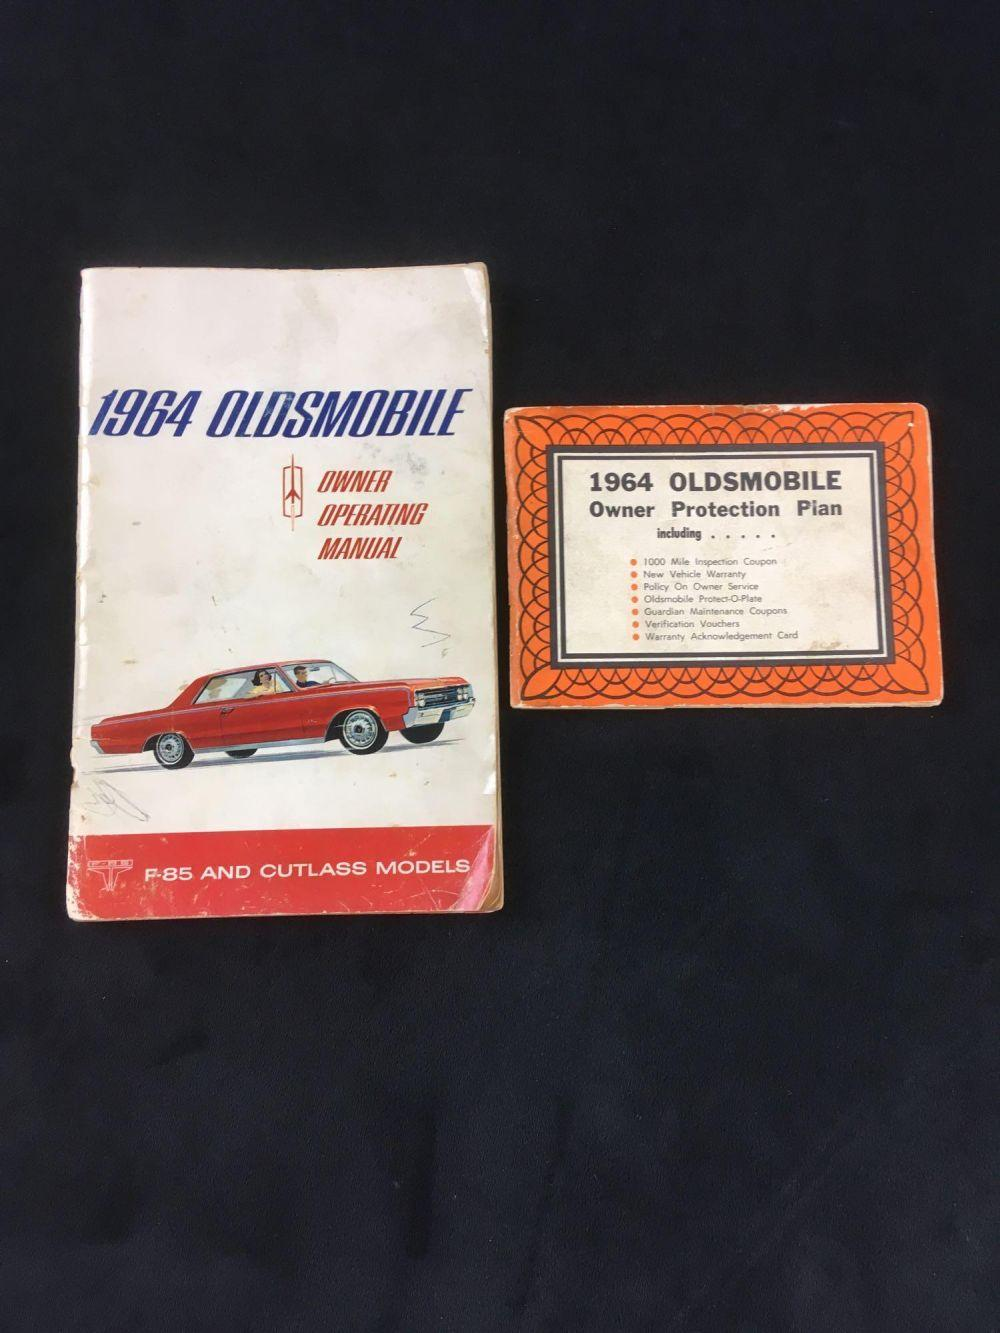 Lot 623: Automobile History Docs of Original Operating Manual and Owner Protection Plan for 1964 Oldsmobile